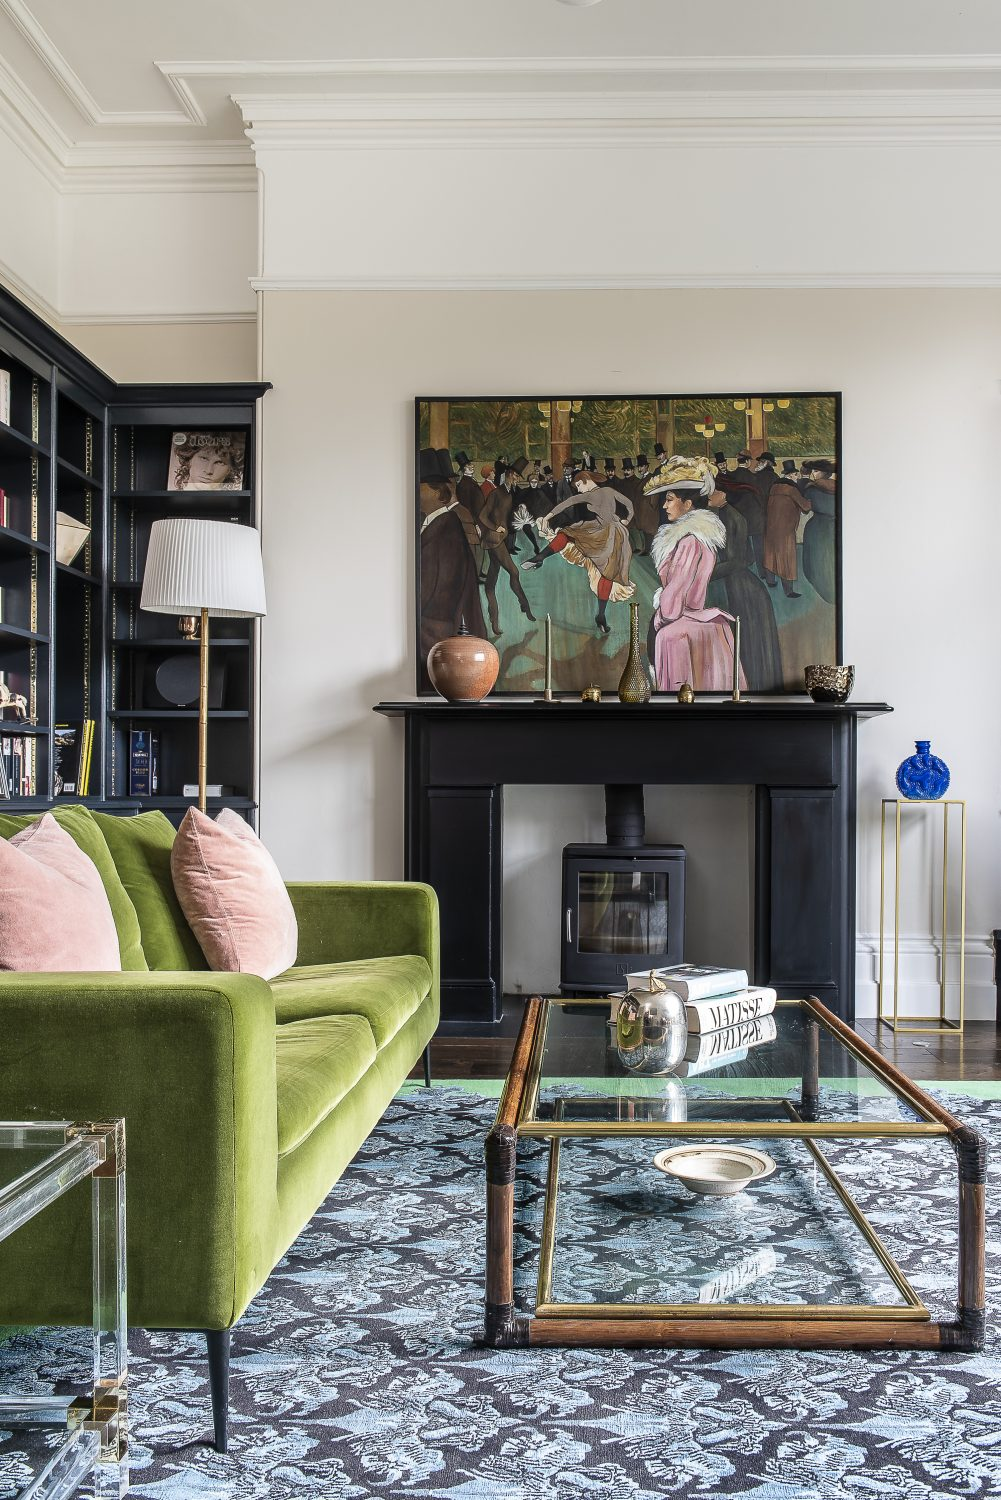 The focus in Olya's husband's study is a piece by the artist Louis Midavaine, a copy of one of Toulouse Lautrec's Moulin Rouge paintings from the 19th century. A rug from The Rug Company and a bright green Conran velvet sofa compliment the painting's palette